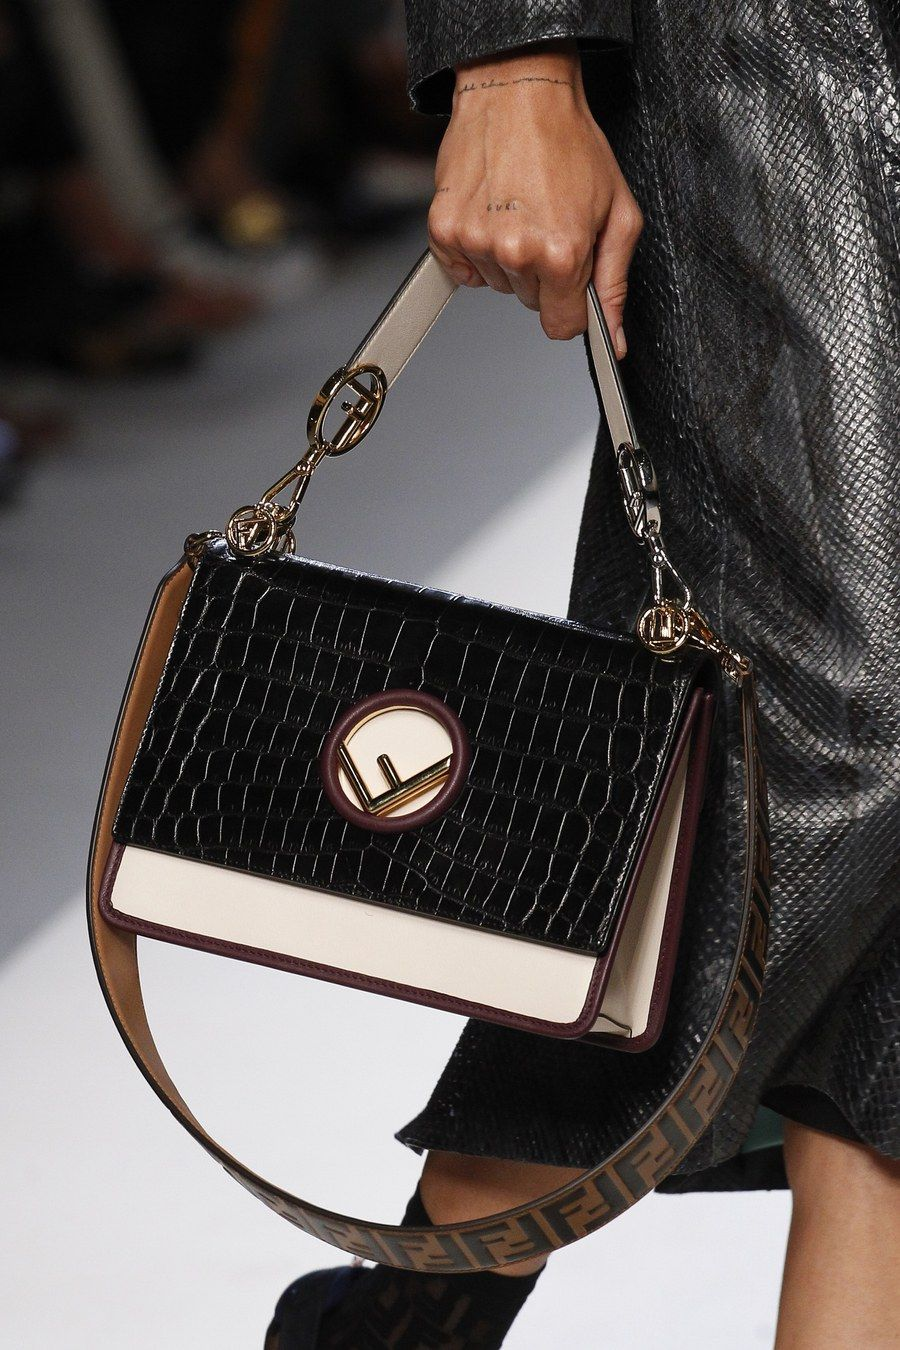 779ae33c3d44 Obsessed With Authentic Designer Handbags. Fendi Spring 2018 Ready-to-Wear  collection